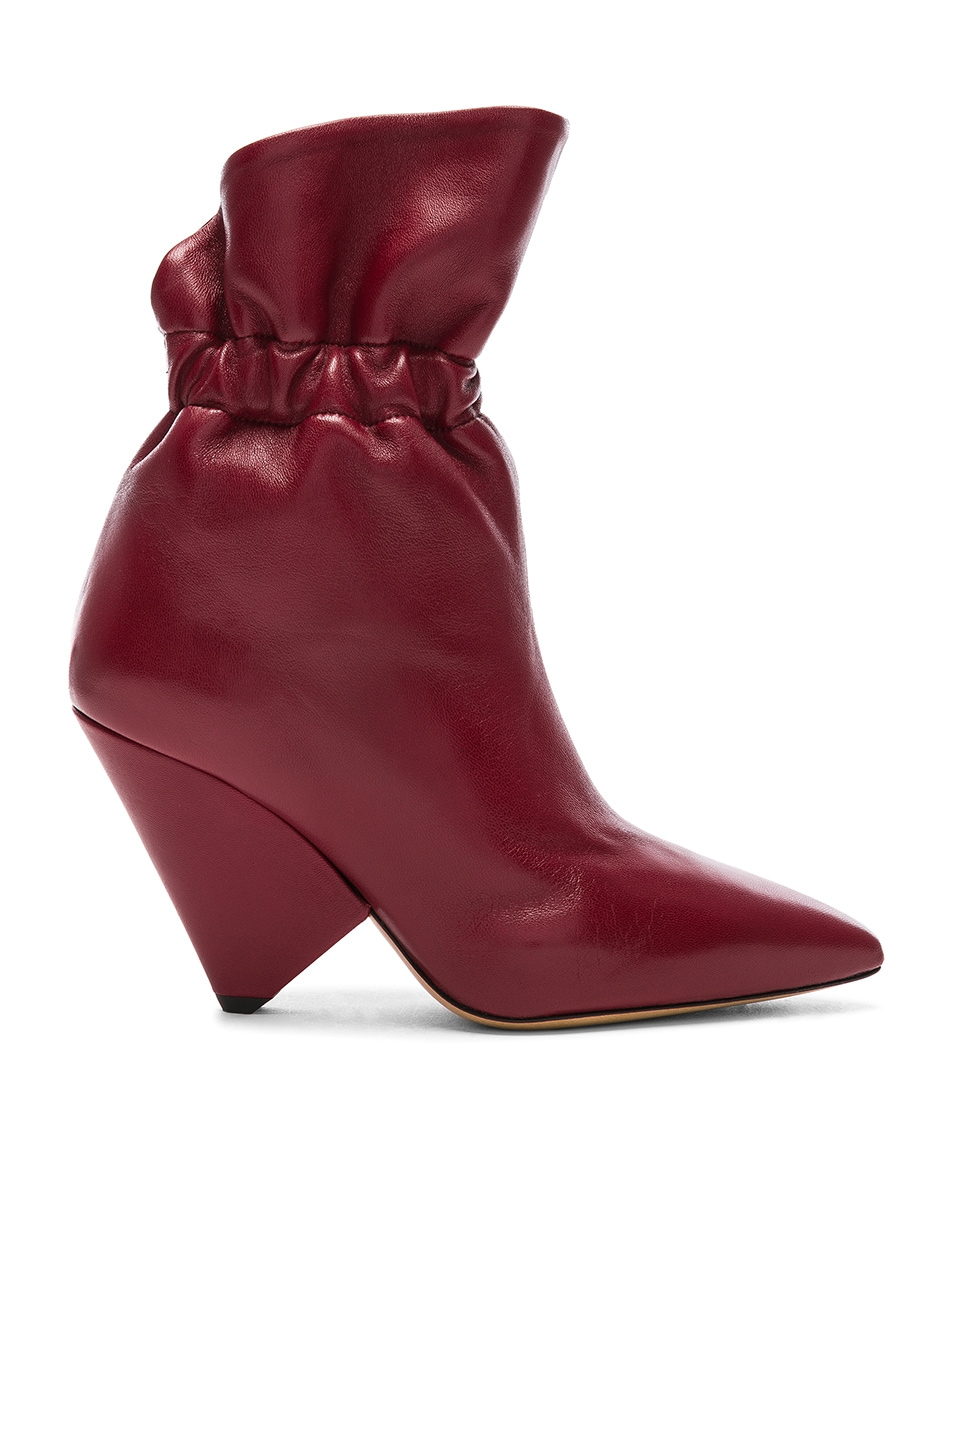 Image 1 of Isabel Marant Leather Lileas Boots in Burgundy